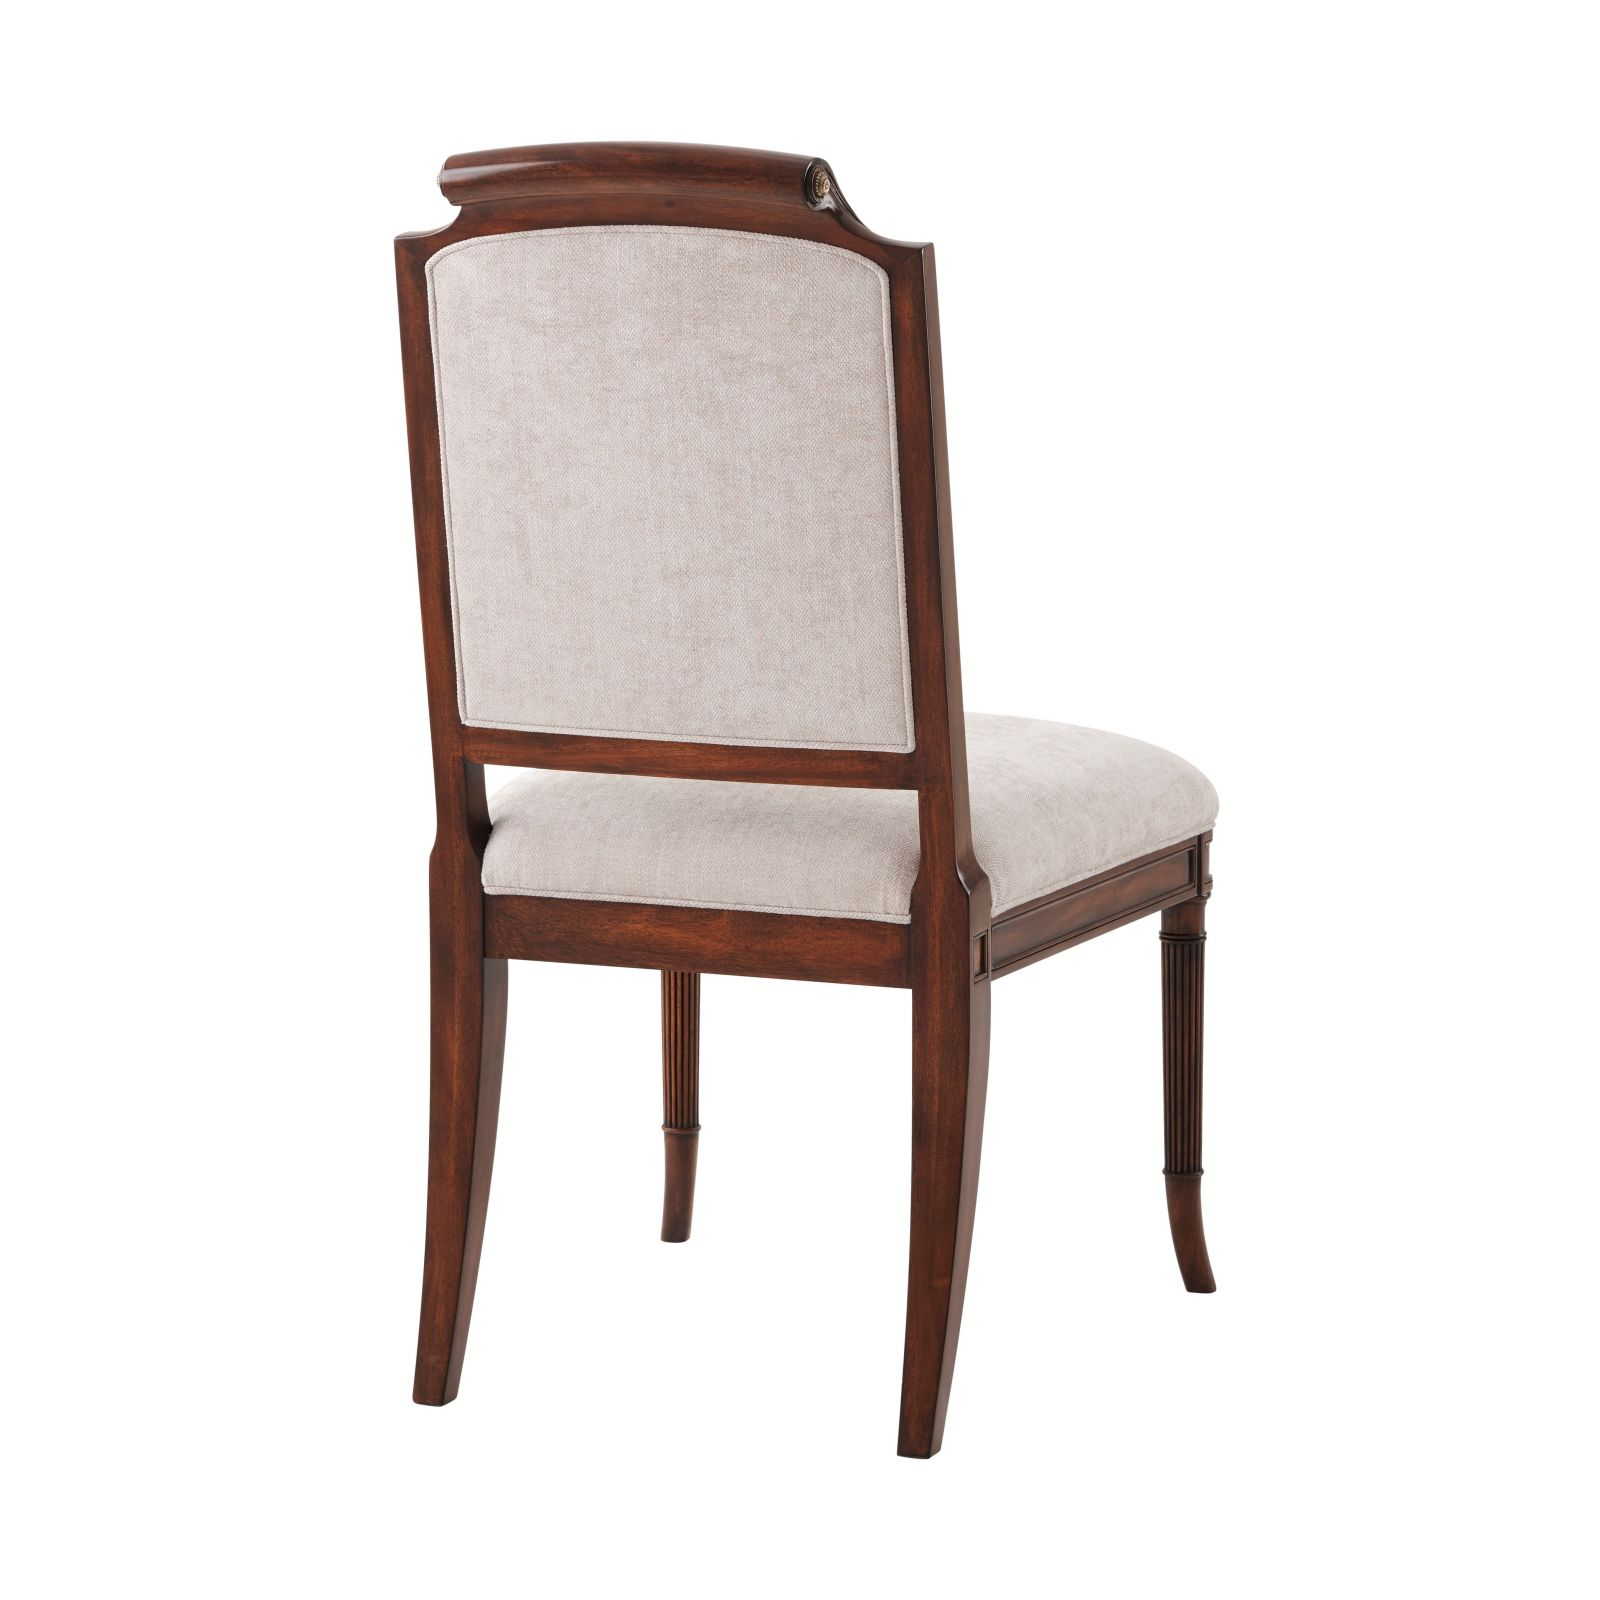 A finely carved mahogany dining chair